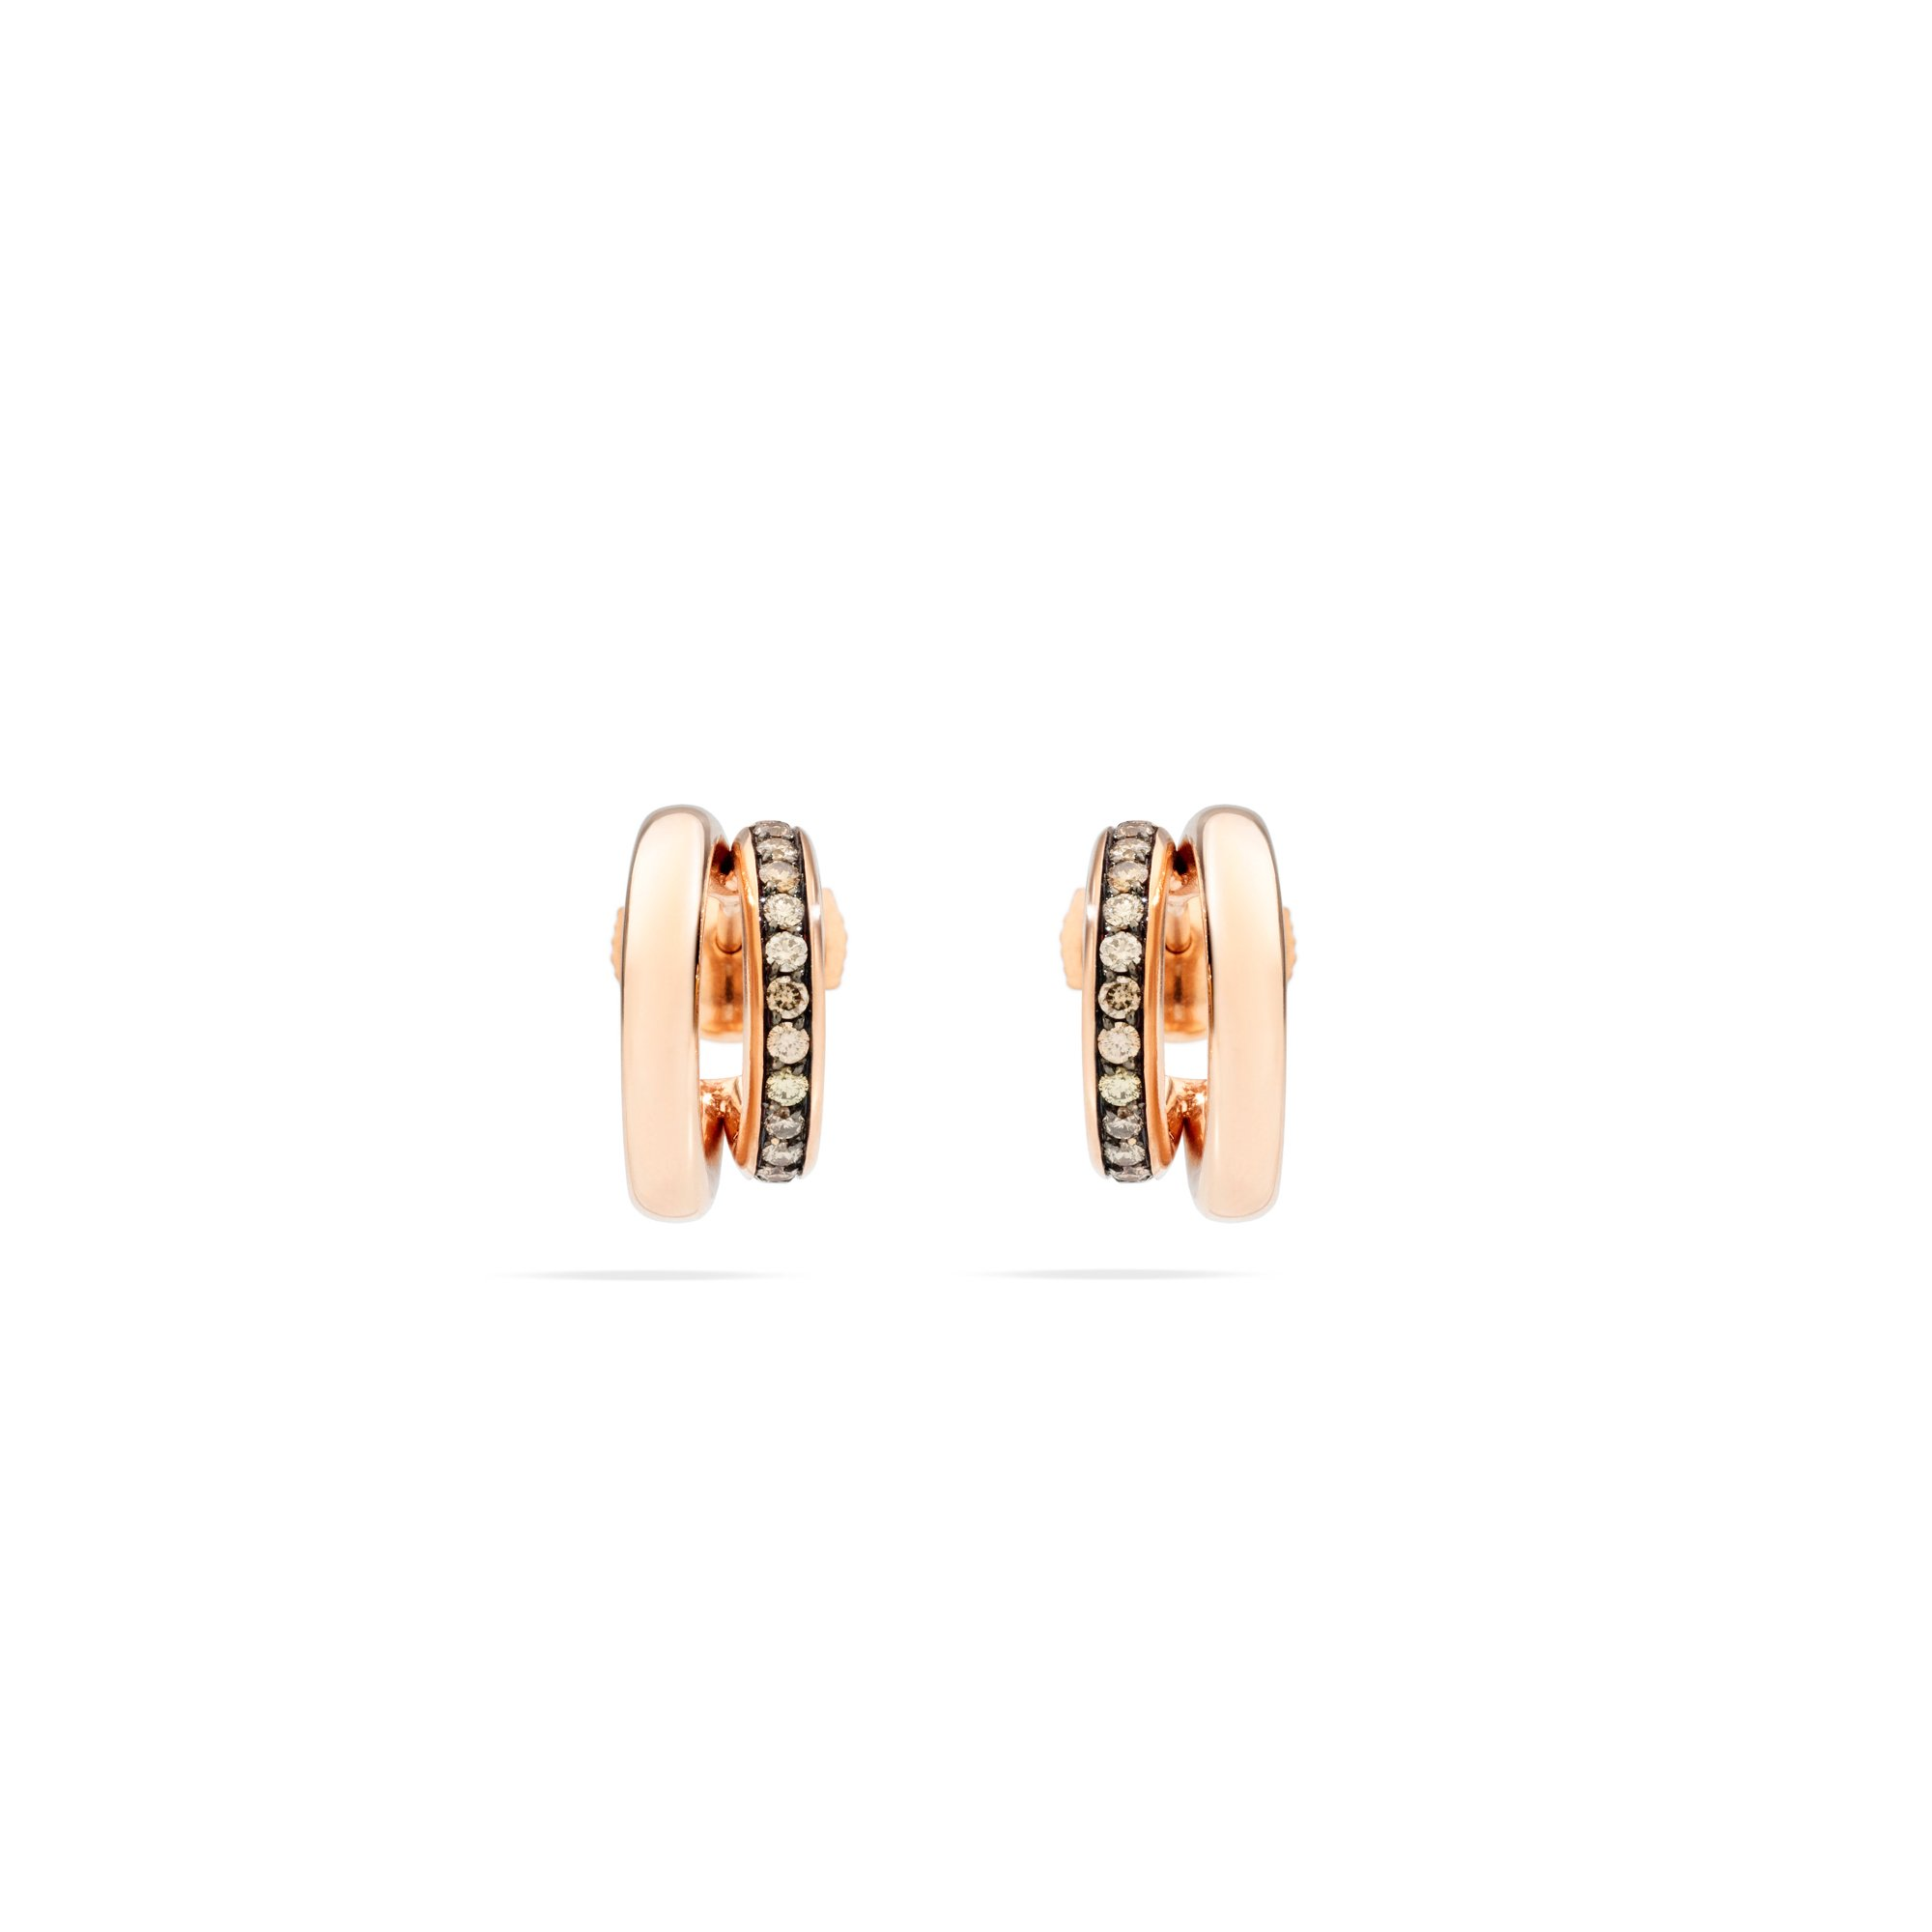 Boucles d'oreilles Pomellato Iconica en or rose et diamants bruns